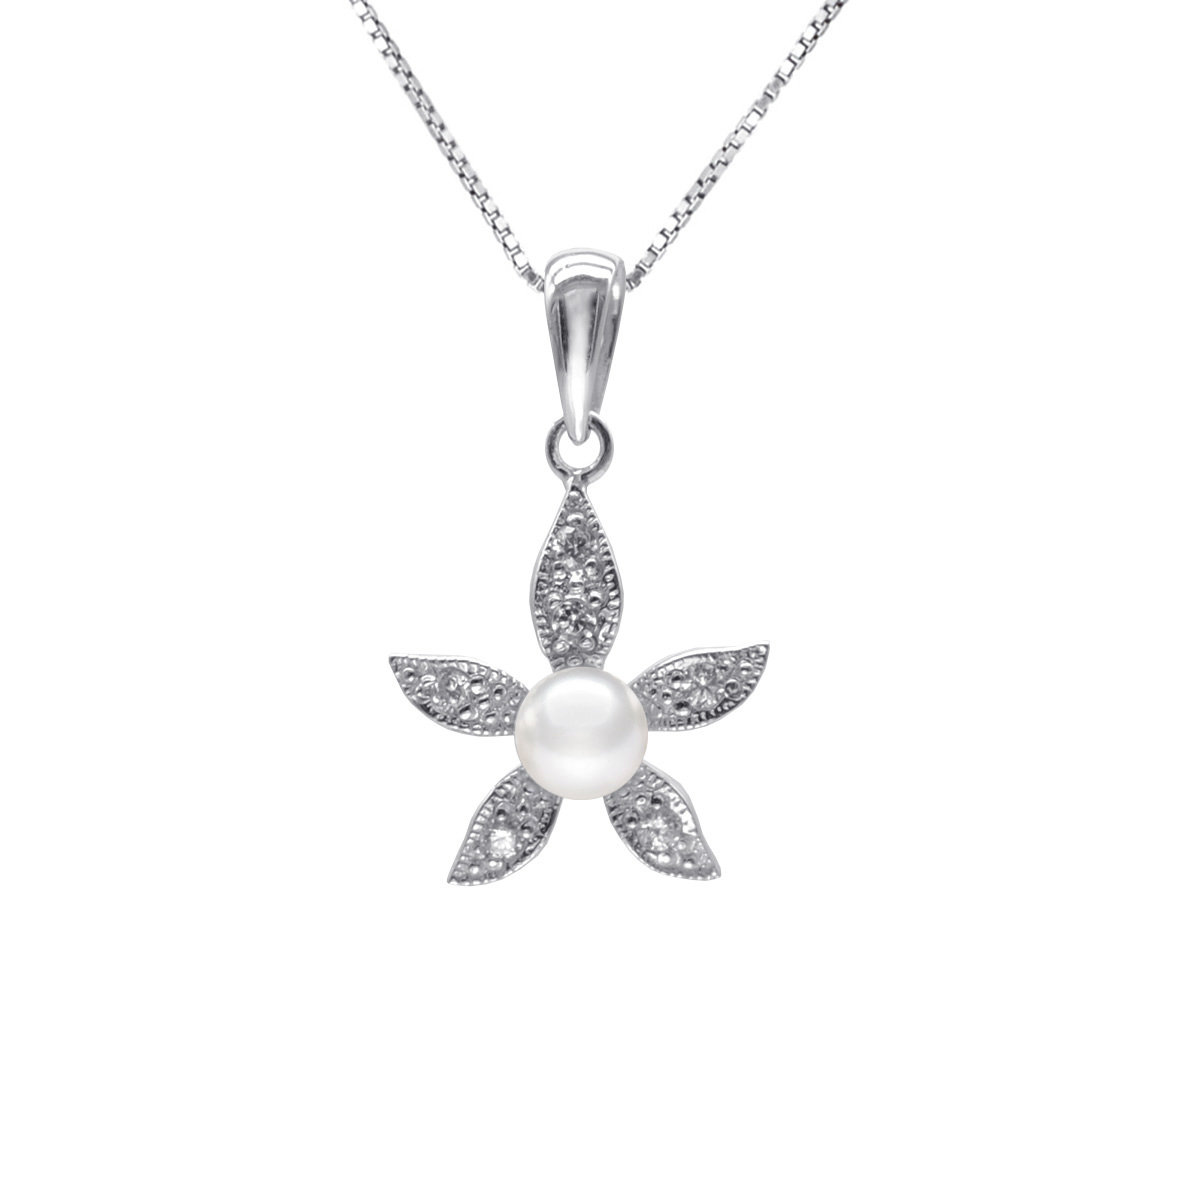 Bauhinia-Cultured Fresh water Pearl with 925 silver mounted with cz Pendant